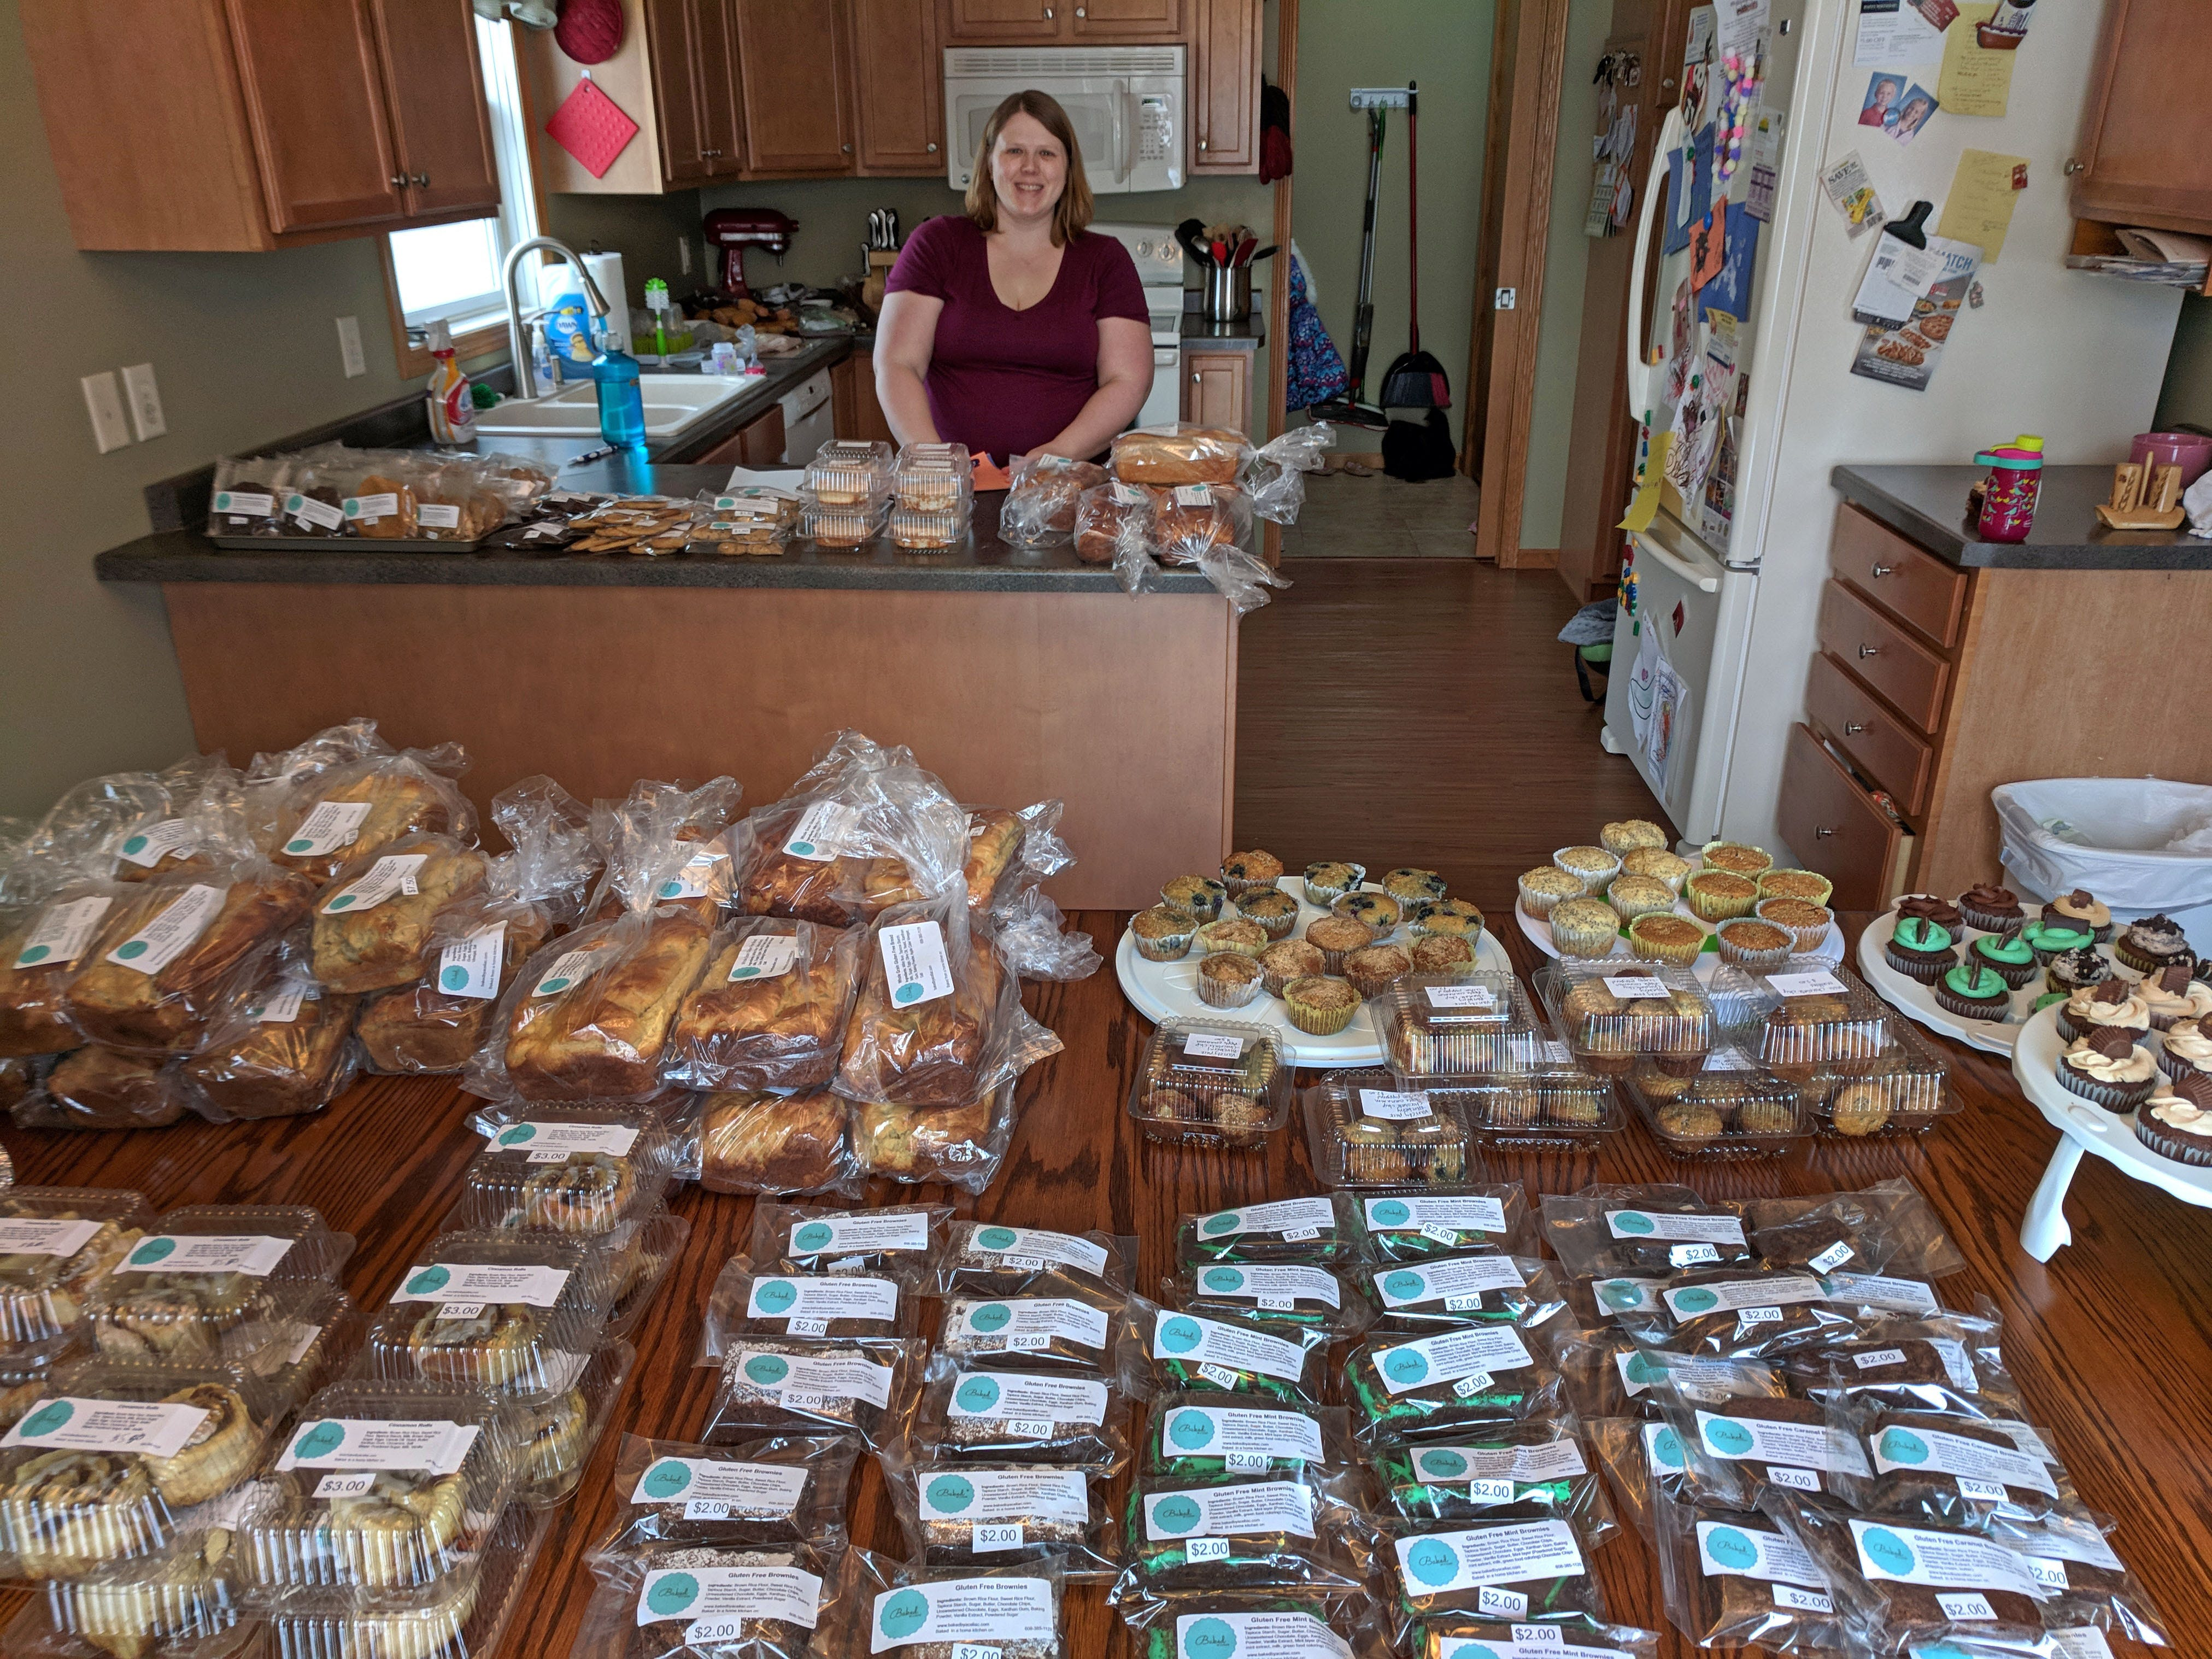 A wide array of gluten-free items are lined up for sale from Sarah Burns' Baked by a Celiac.